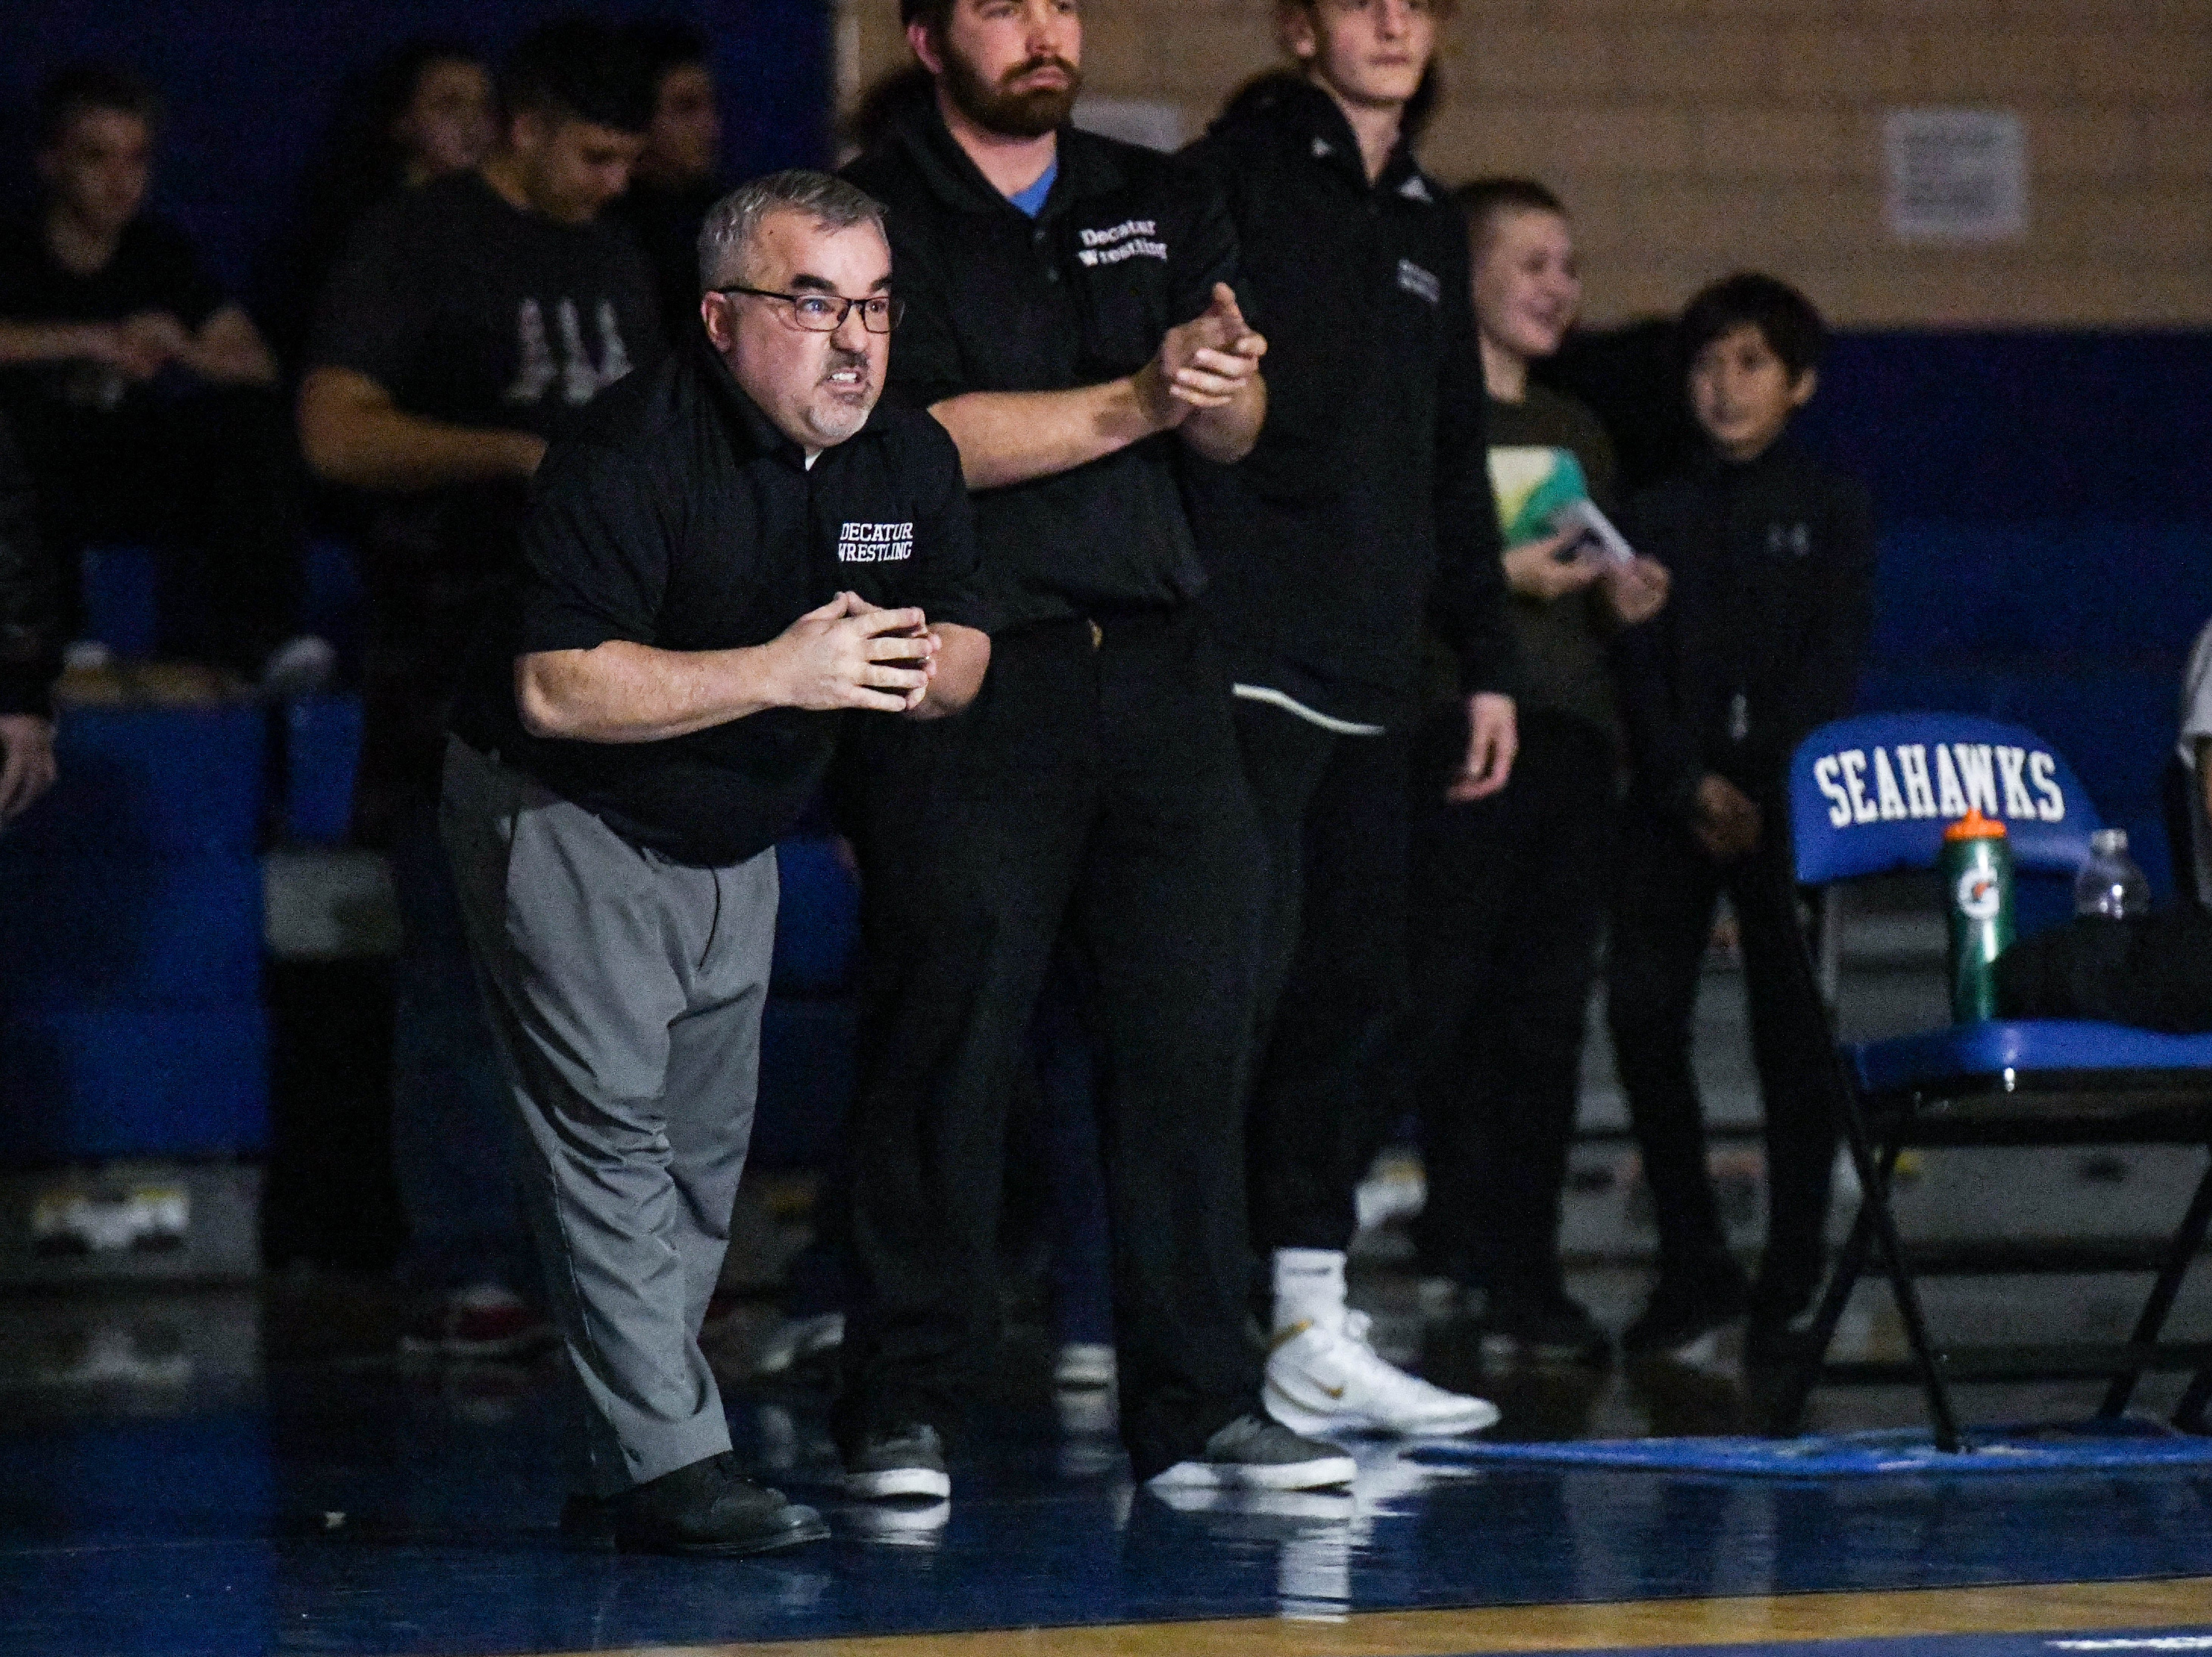 Stephen Decatur's Todd Martinek coaches the team at a match against Parkside at Stephen Decatur High School on Wednesday, Jan. 23, 2019.